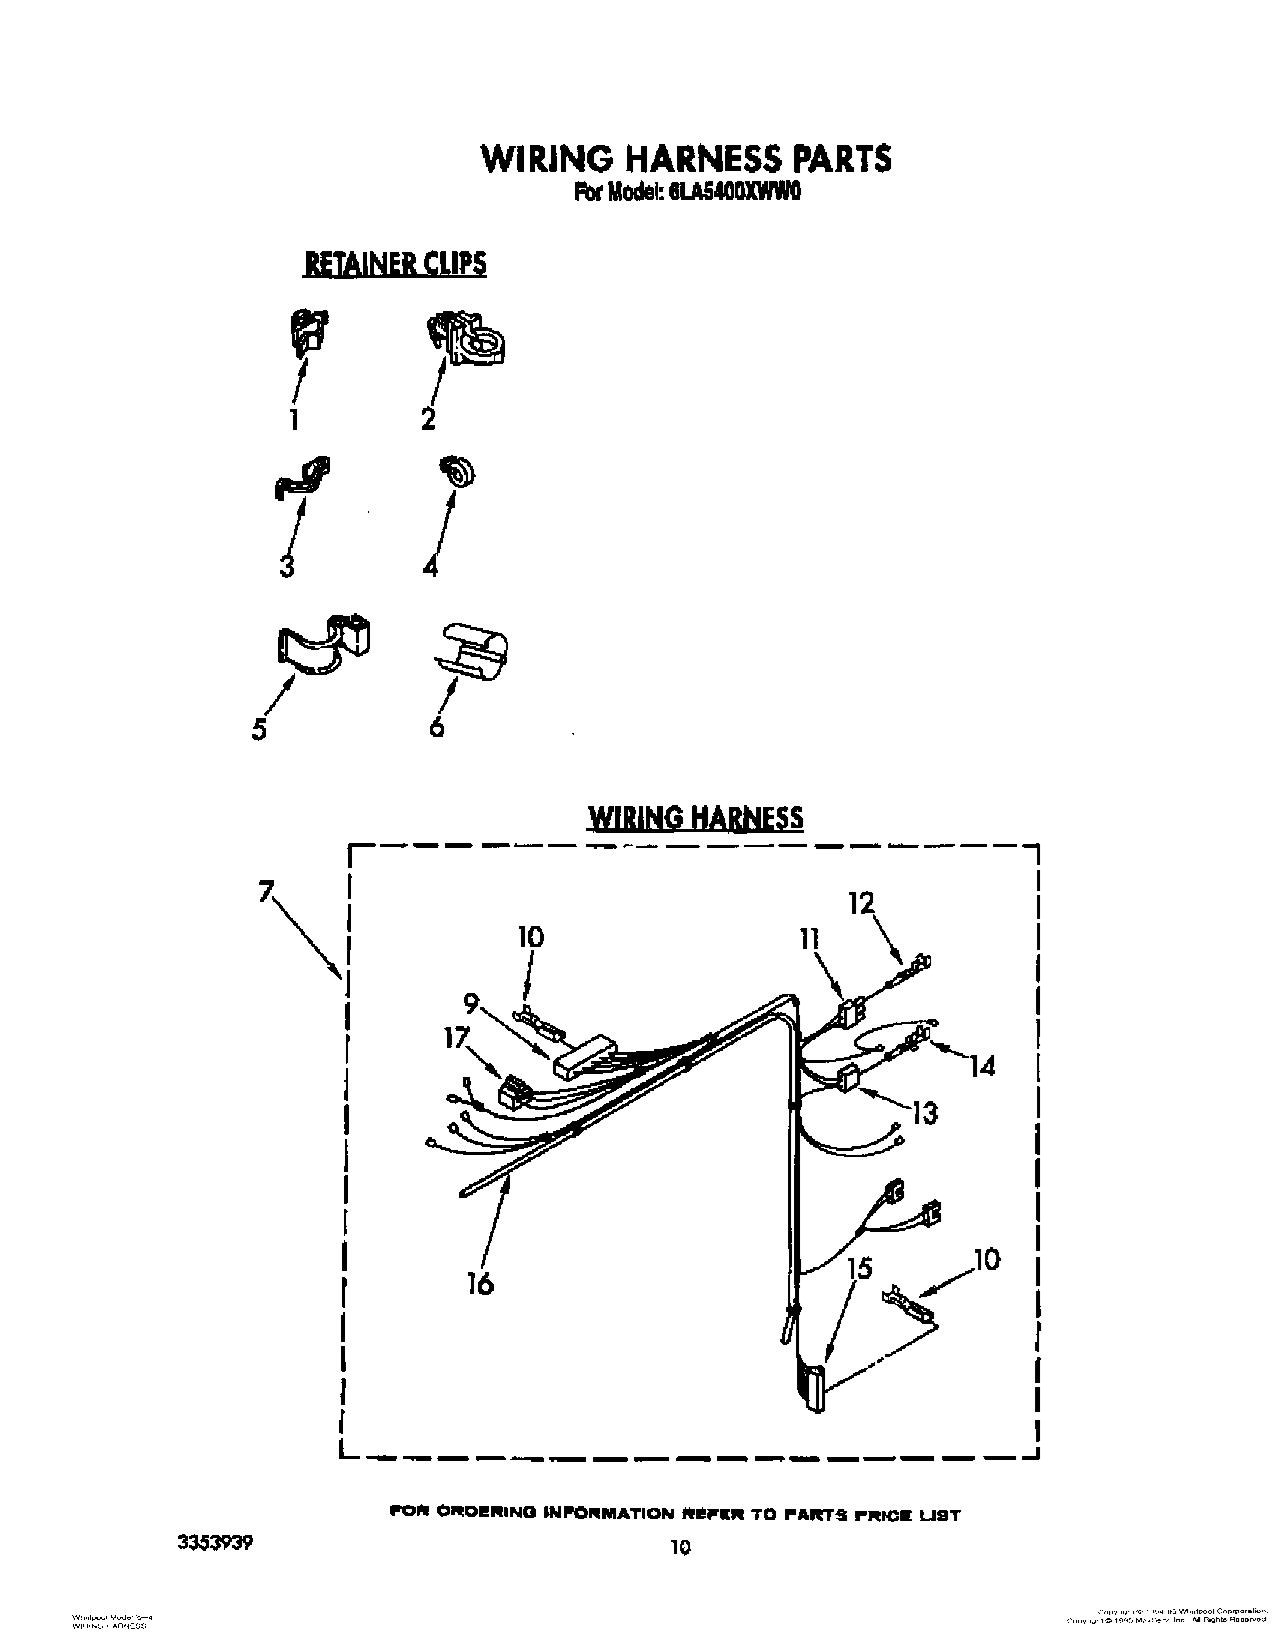 Wiring Harness Clip 90016 Diagram And Parts List For Maytag Washerparts Model Mvwc500vw1 Gm Clips Solutions Safety